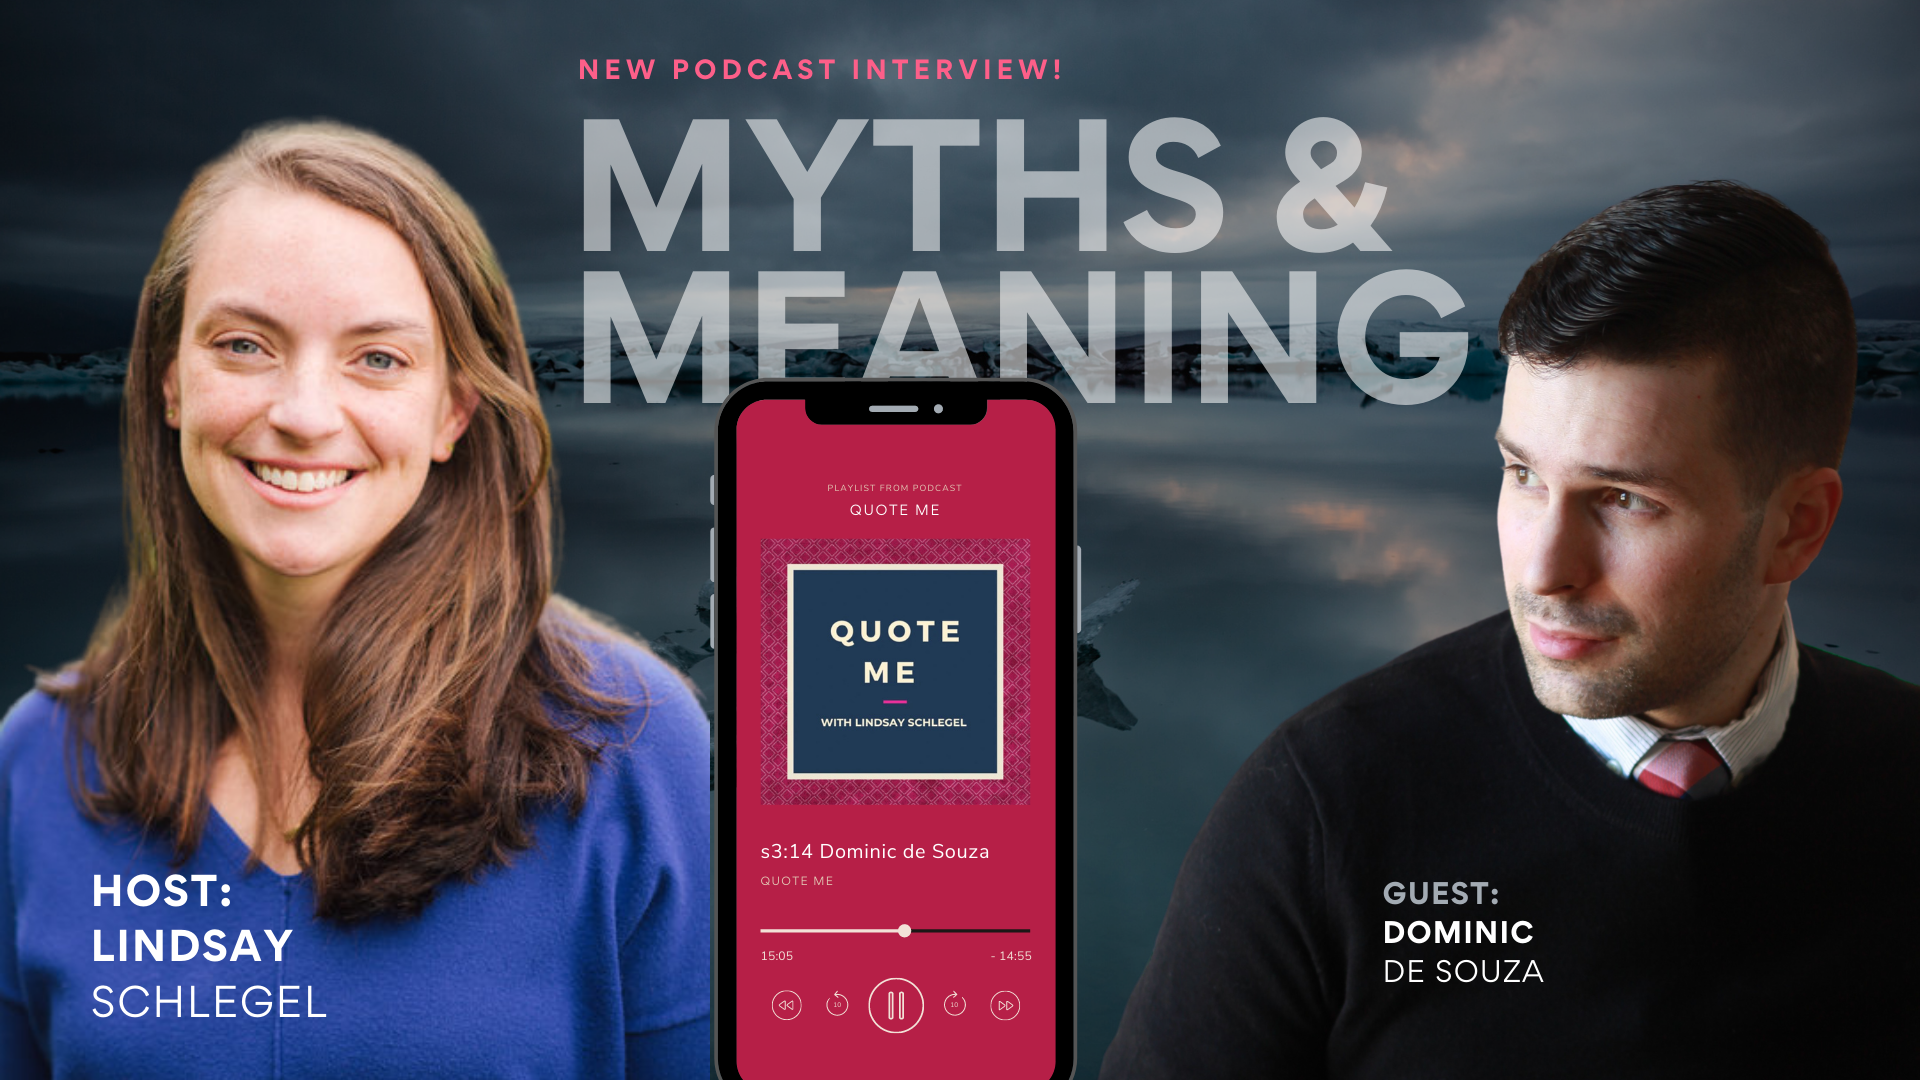 Myths & Meaning – 'Quote Me' Podcast Interview with Lindsay Schlegel & Dominic de Souza